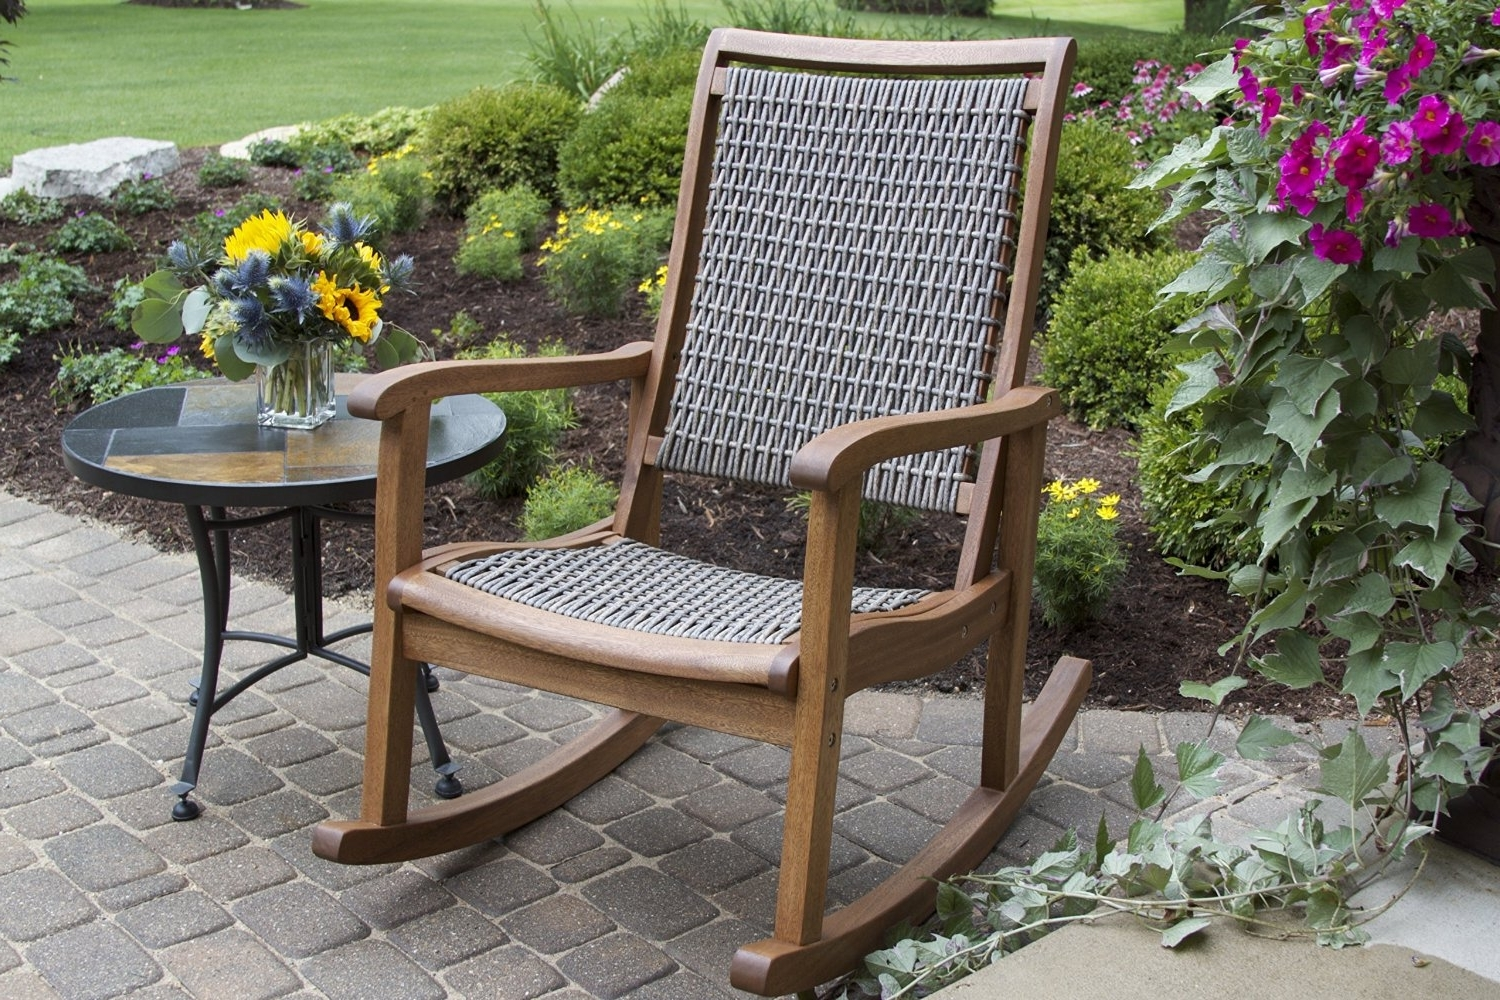 Trendy Resin Outdoor Patio Rocking Chair Designs Best Porch Chairs Review Regarding All Weather Patio Rocking Chairs (View 12 of 20)